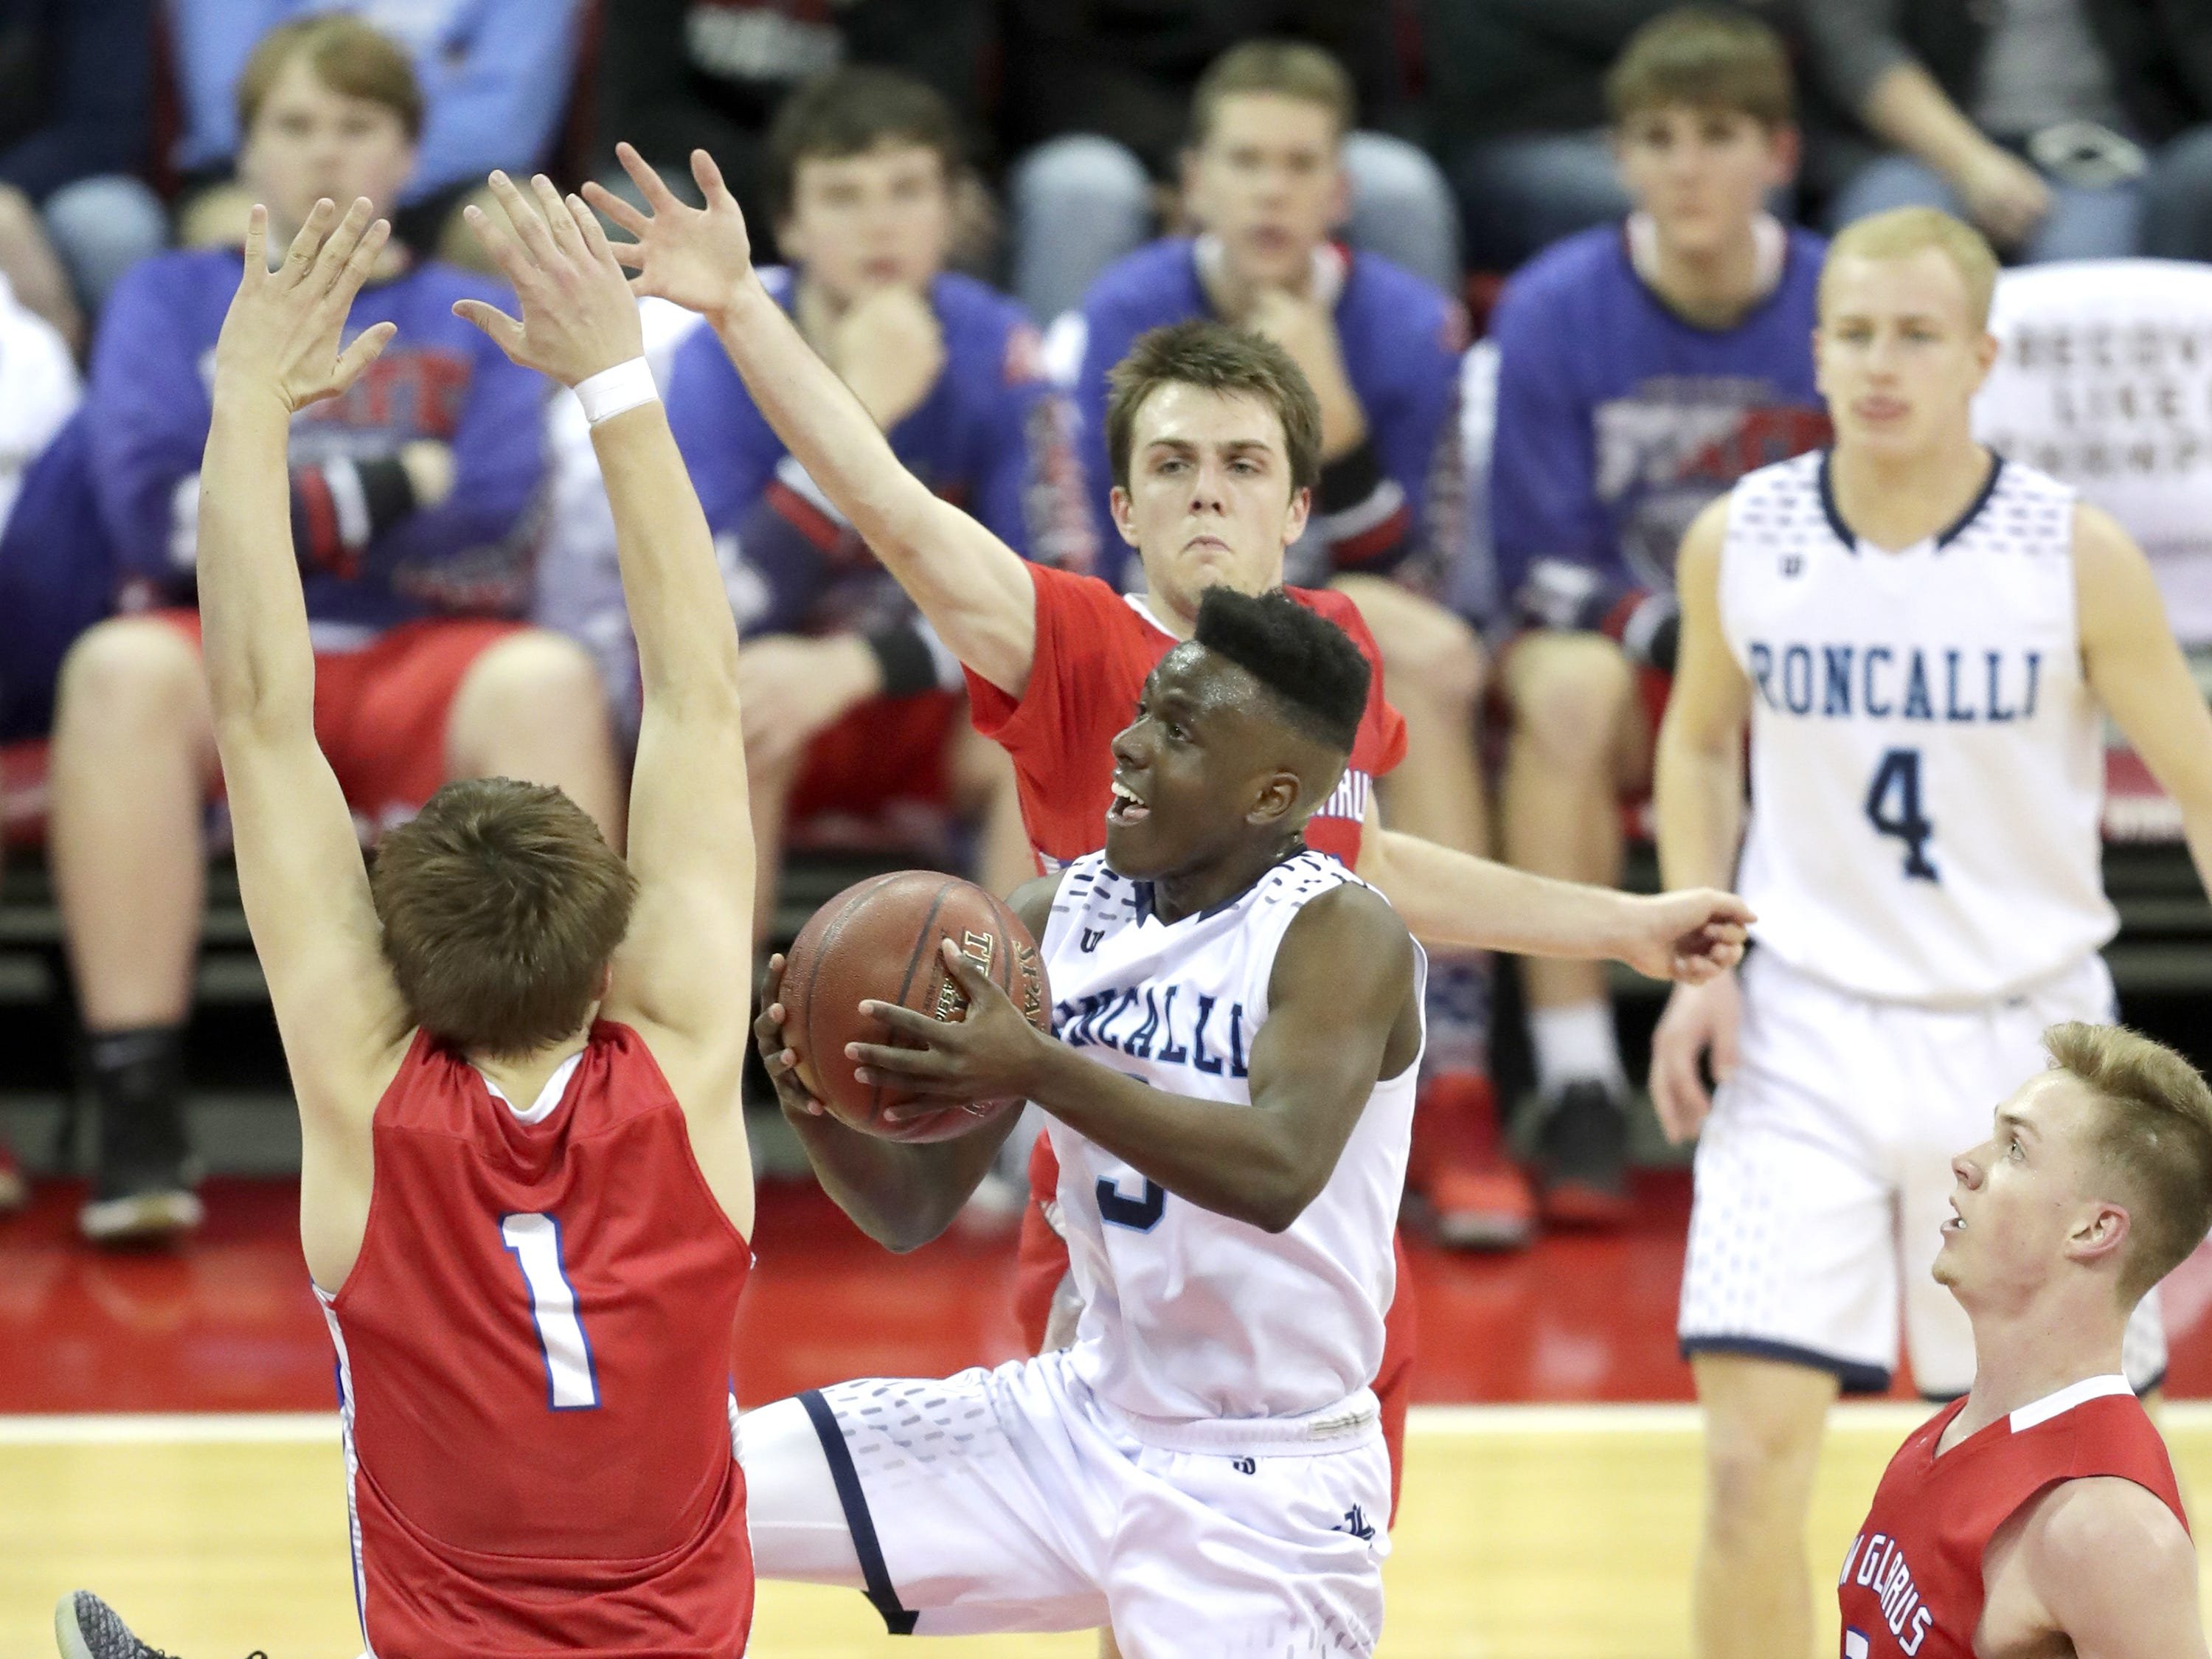 Roncalli High School's #3 Chombi Lambert against New Glarus High School during their WIAA Division 4 boys basketball state semifinal on Thursday, March 14, 2019, at the KohlCenter in Madison, Wis.  Wm. Glasheen/USA TODAY NETWORK-Wisconsin.